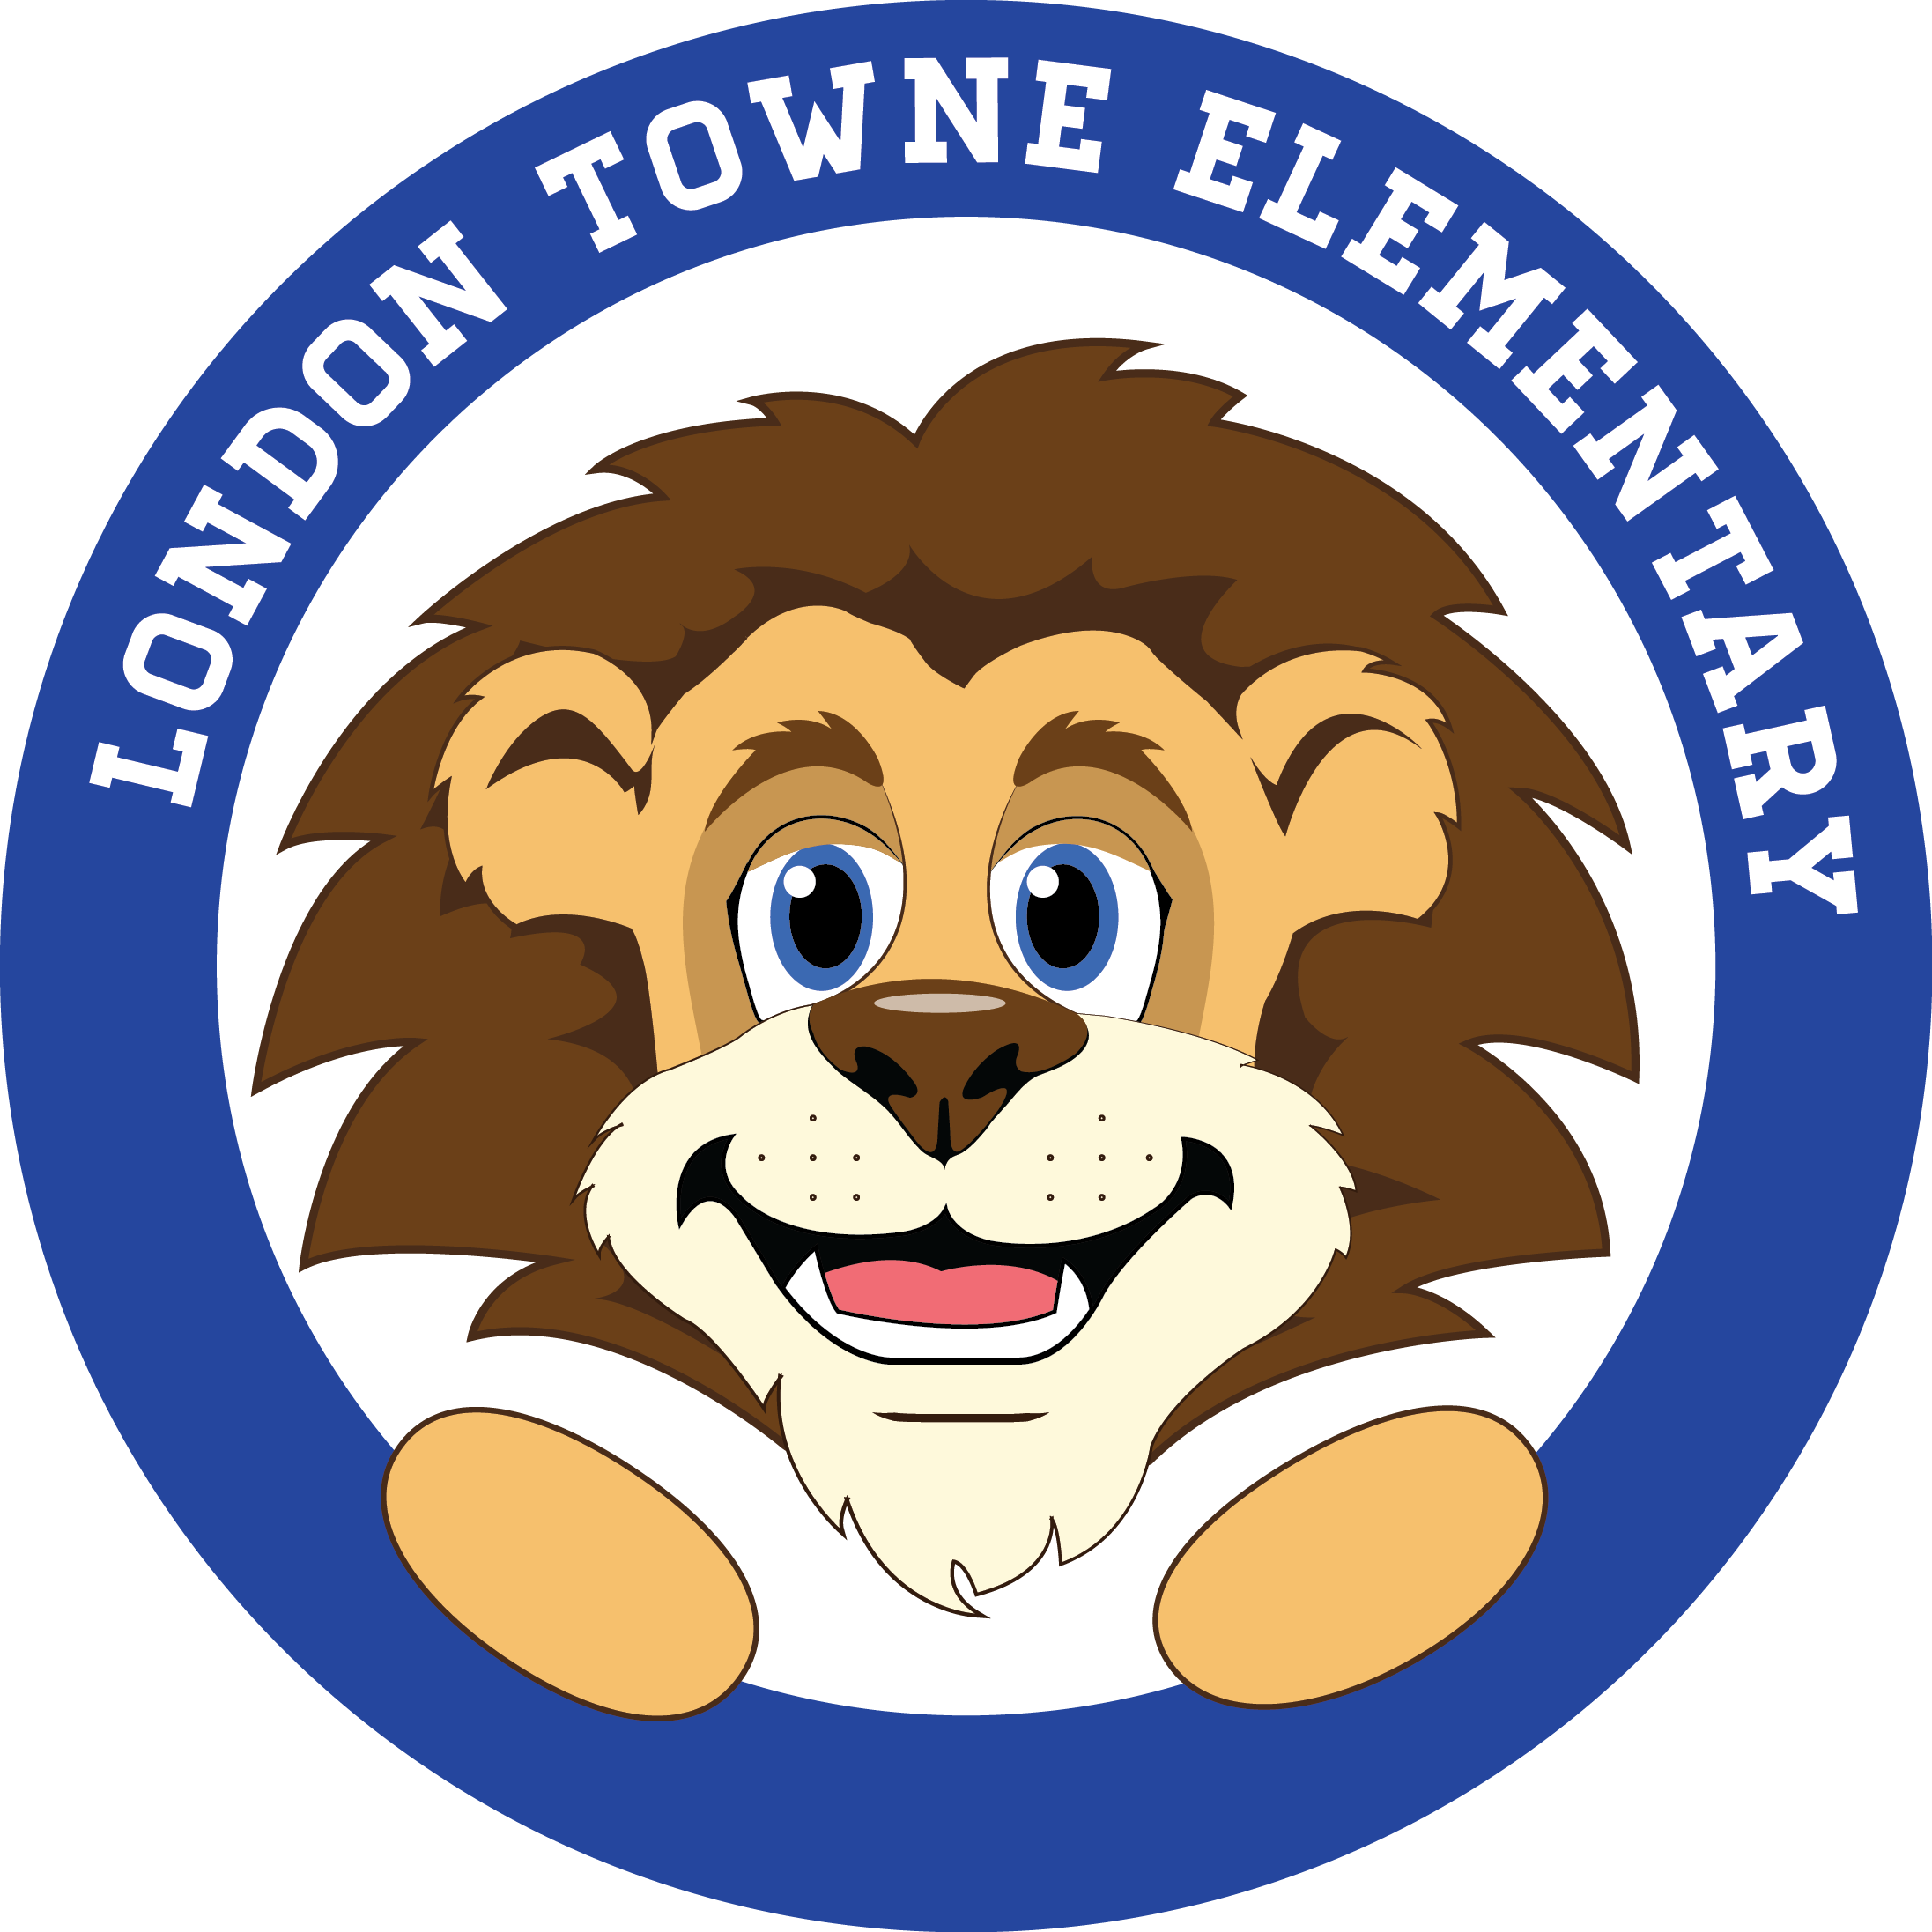 School custodian clipart banner stock London Towne Elementary School | Home of the Lions! | Fairfax County ... banner stock